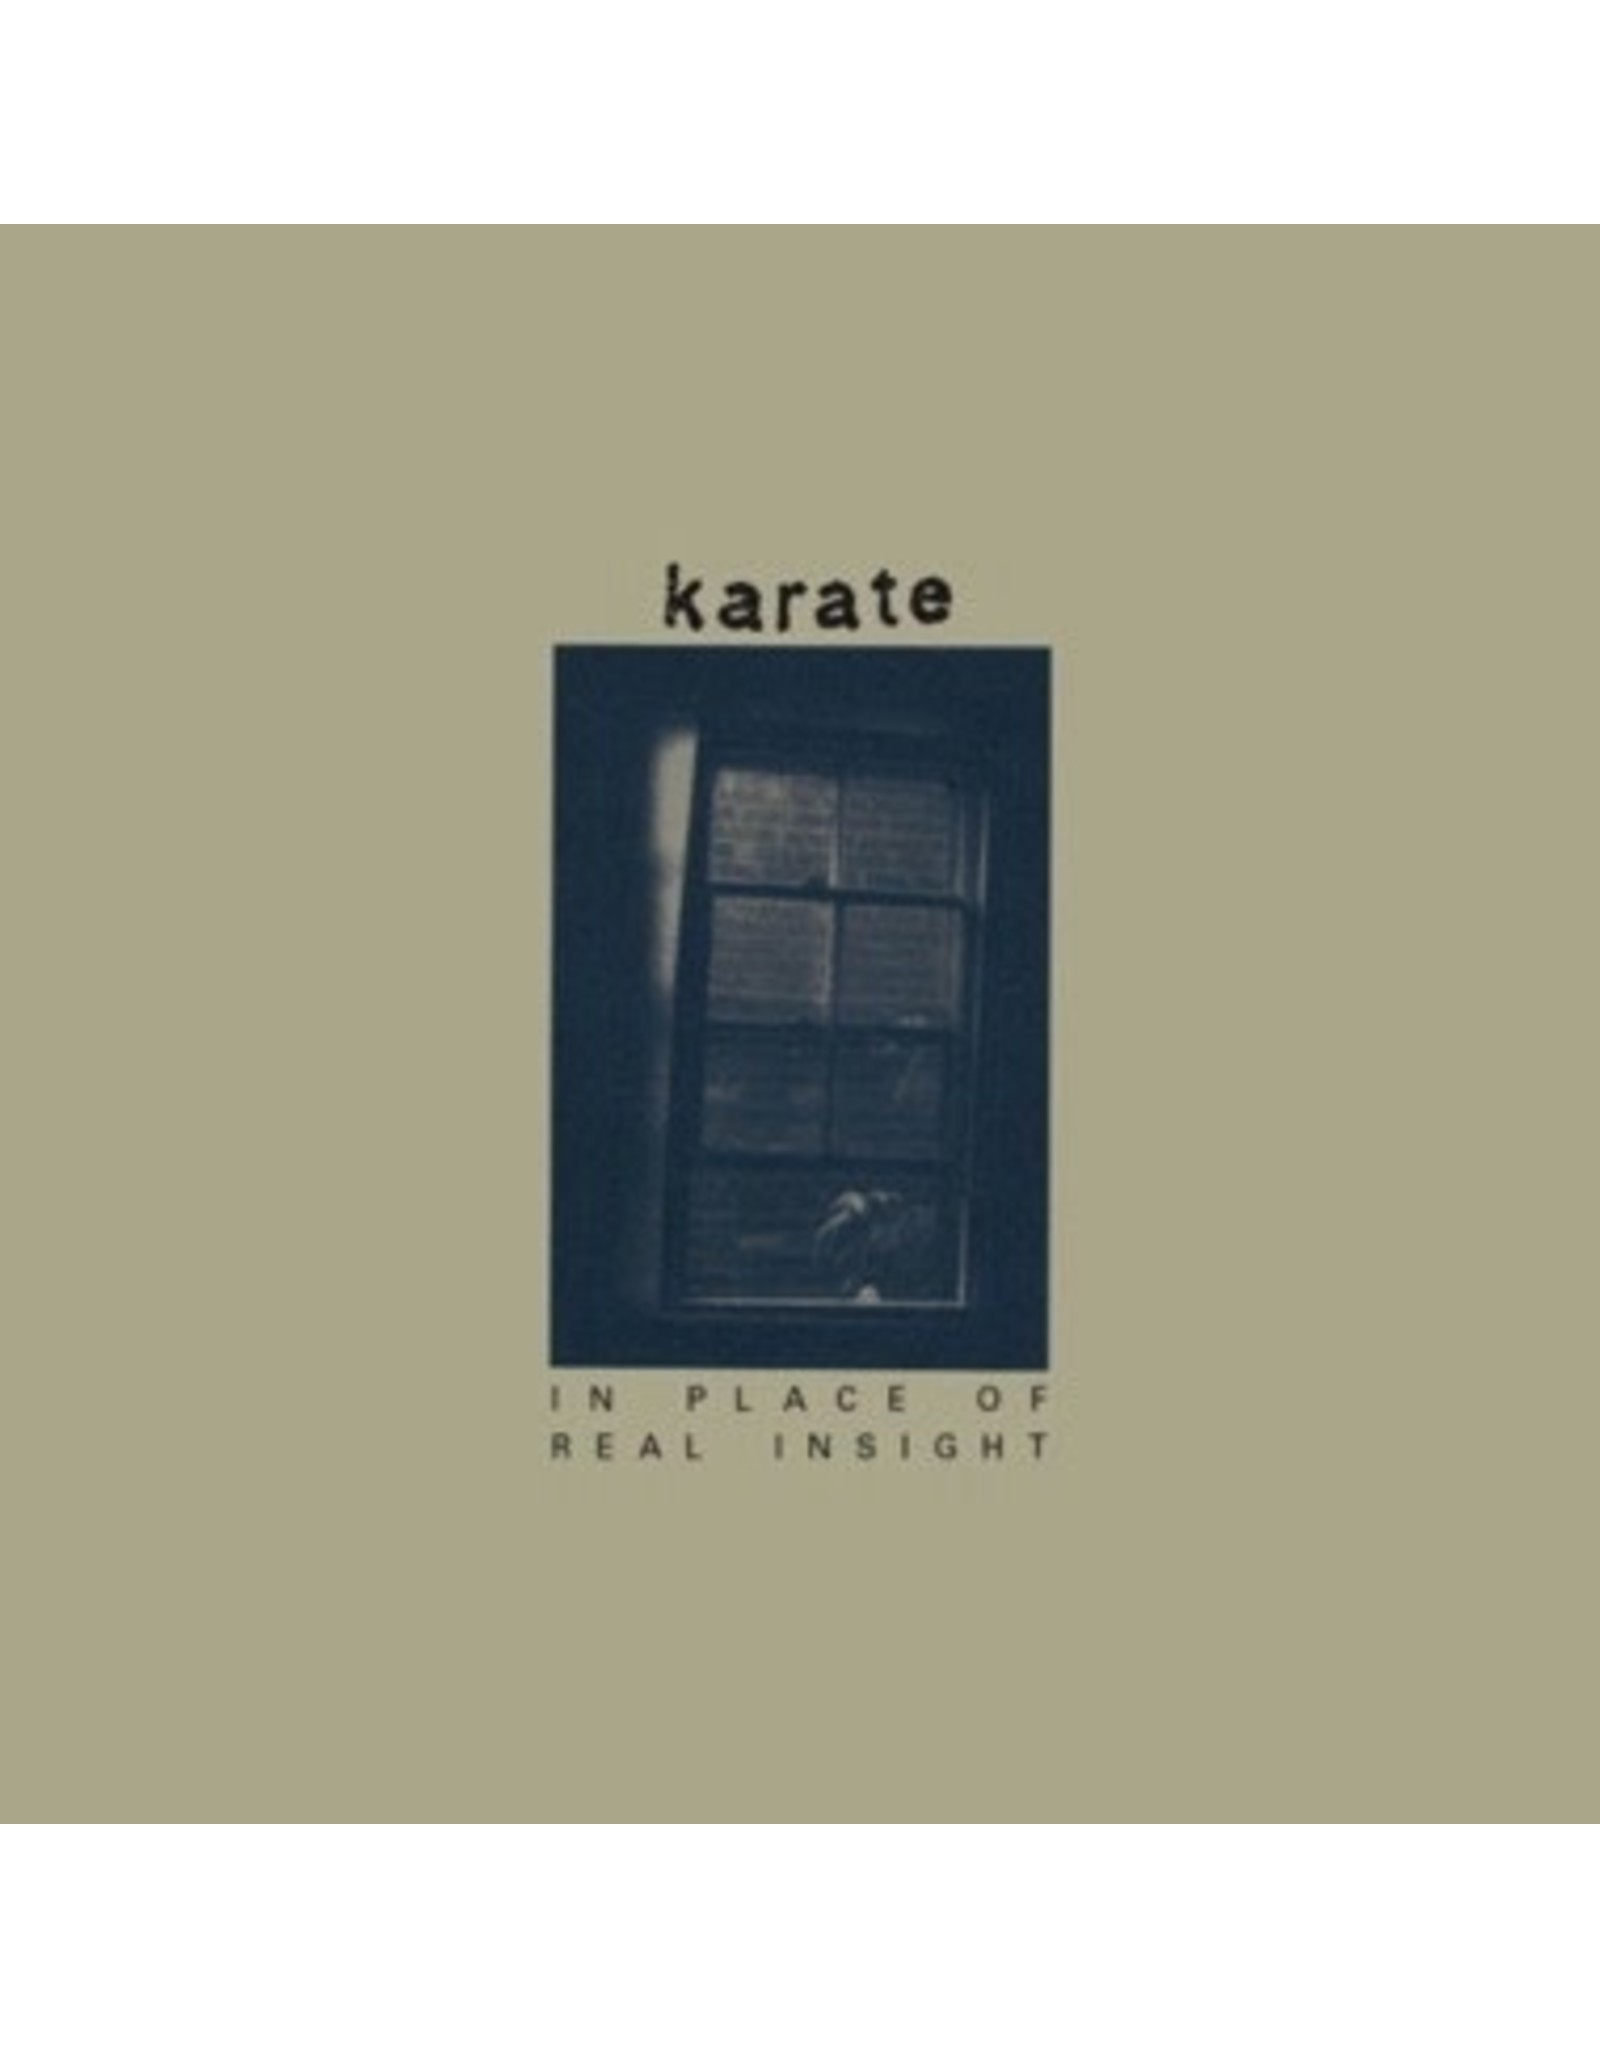 New Vinyl Karate - In Place Of Real Insight (Colored) LP